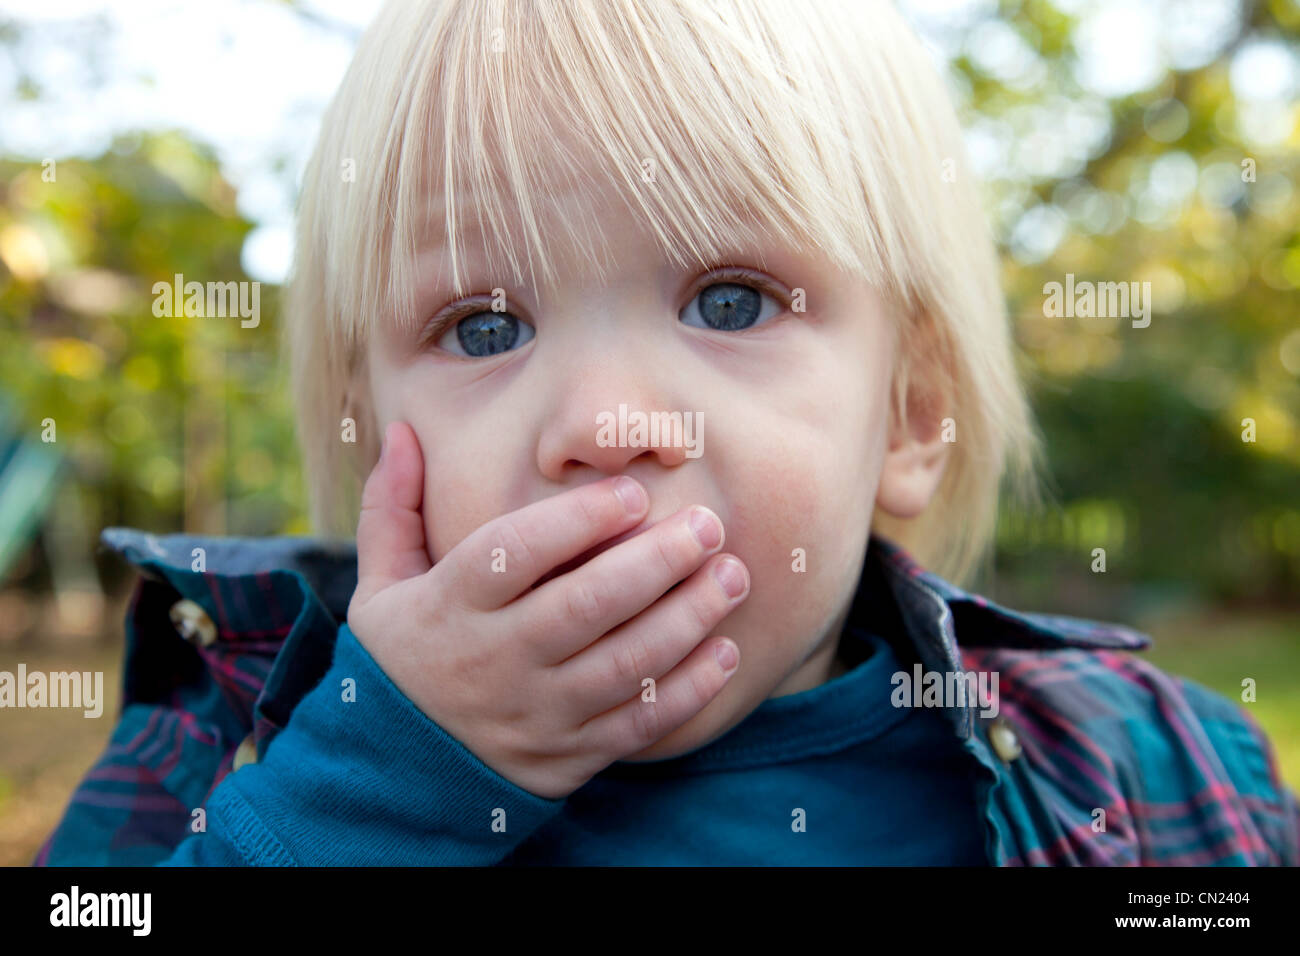 Amazed Young Blond Boy With Hand Over Mouth - Stock Image